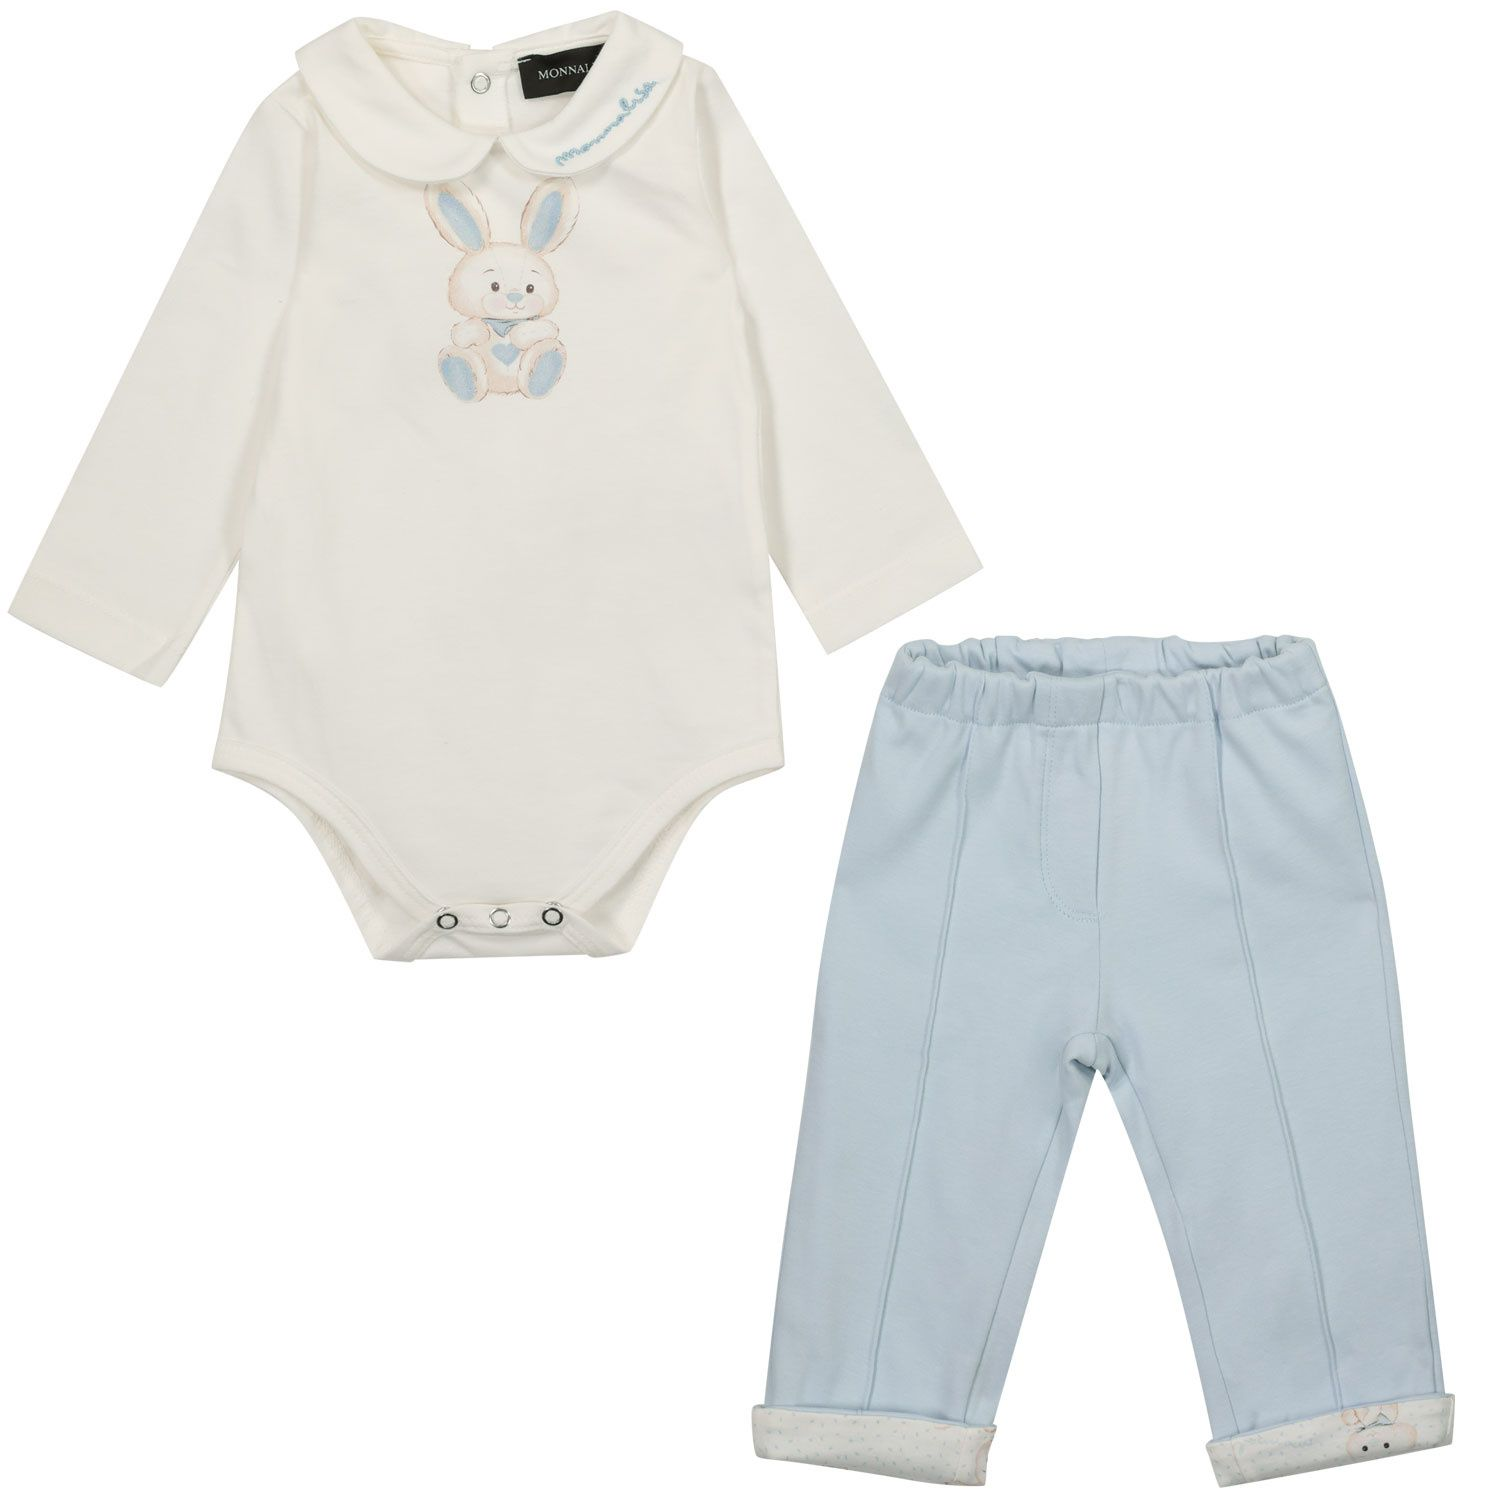 Picture of MonnaLisa 227501 baby set light blue